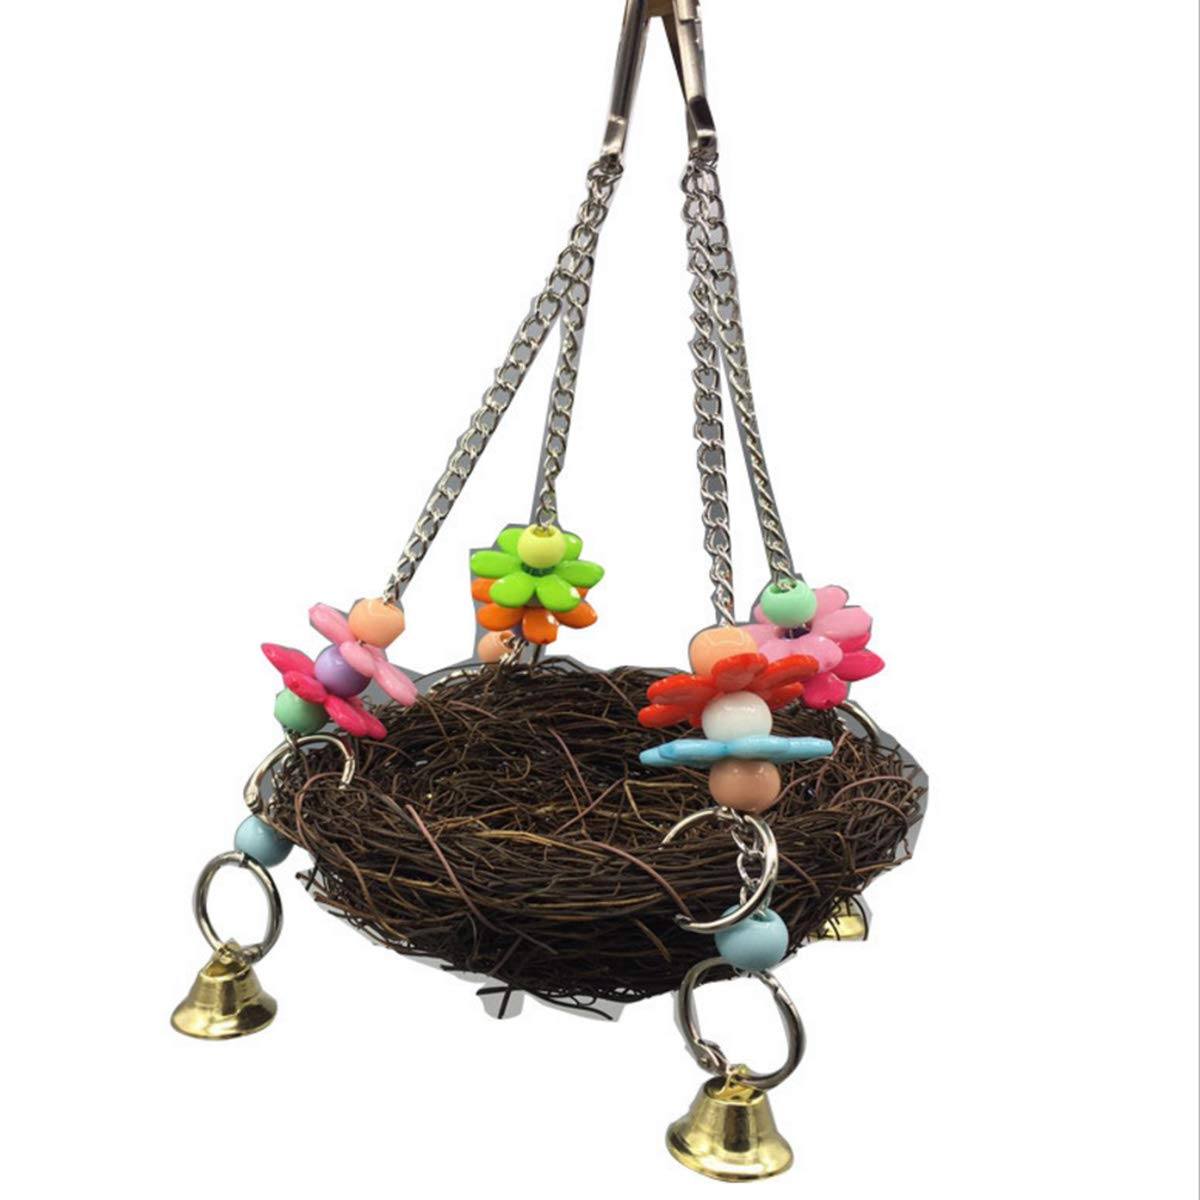 Natural Rattan Nest Bird Swing Toy with Bells, Bird Swing Standing Perch Toy for for Parrots Parakeet Cockatie Budgie Lovebirds Hamster Parrot Parakeet Beauy Girl